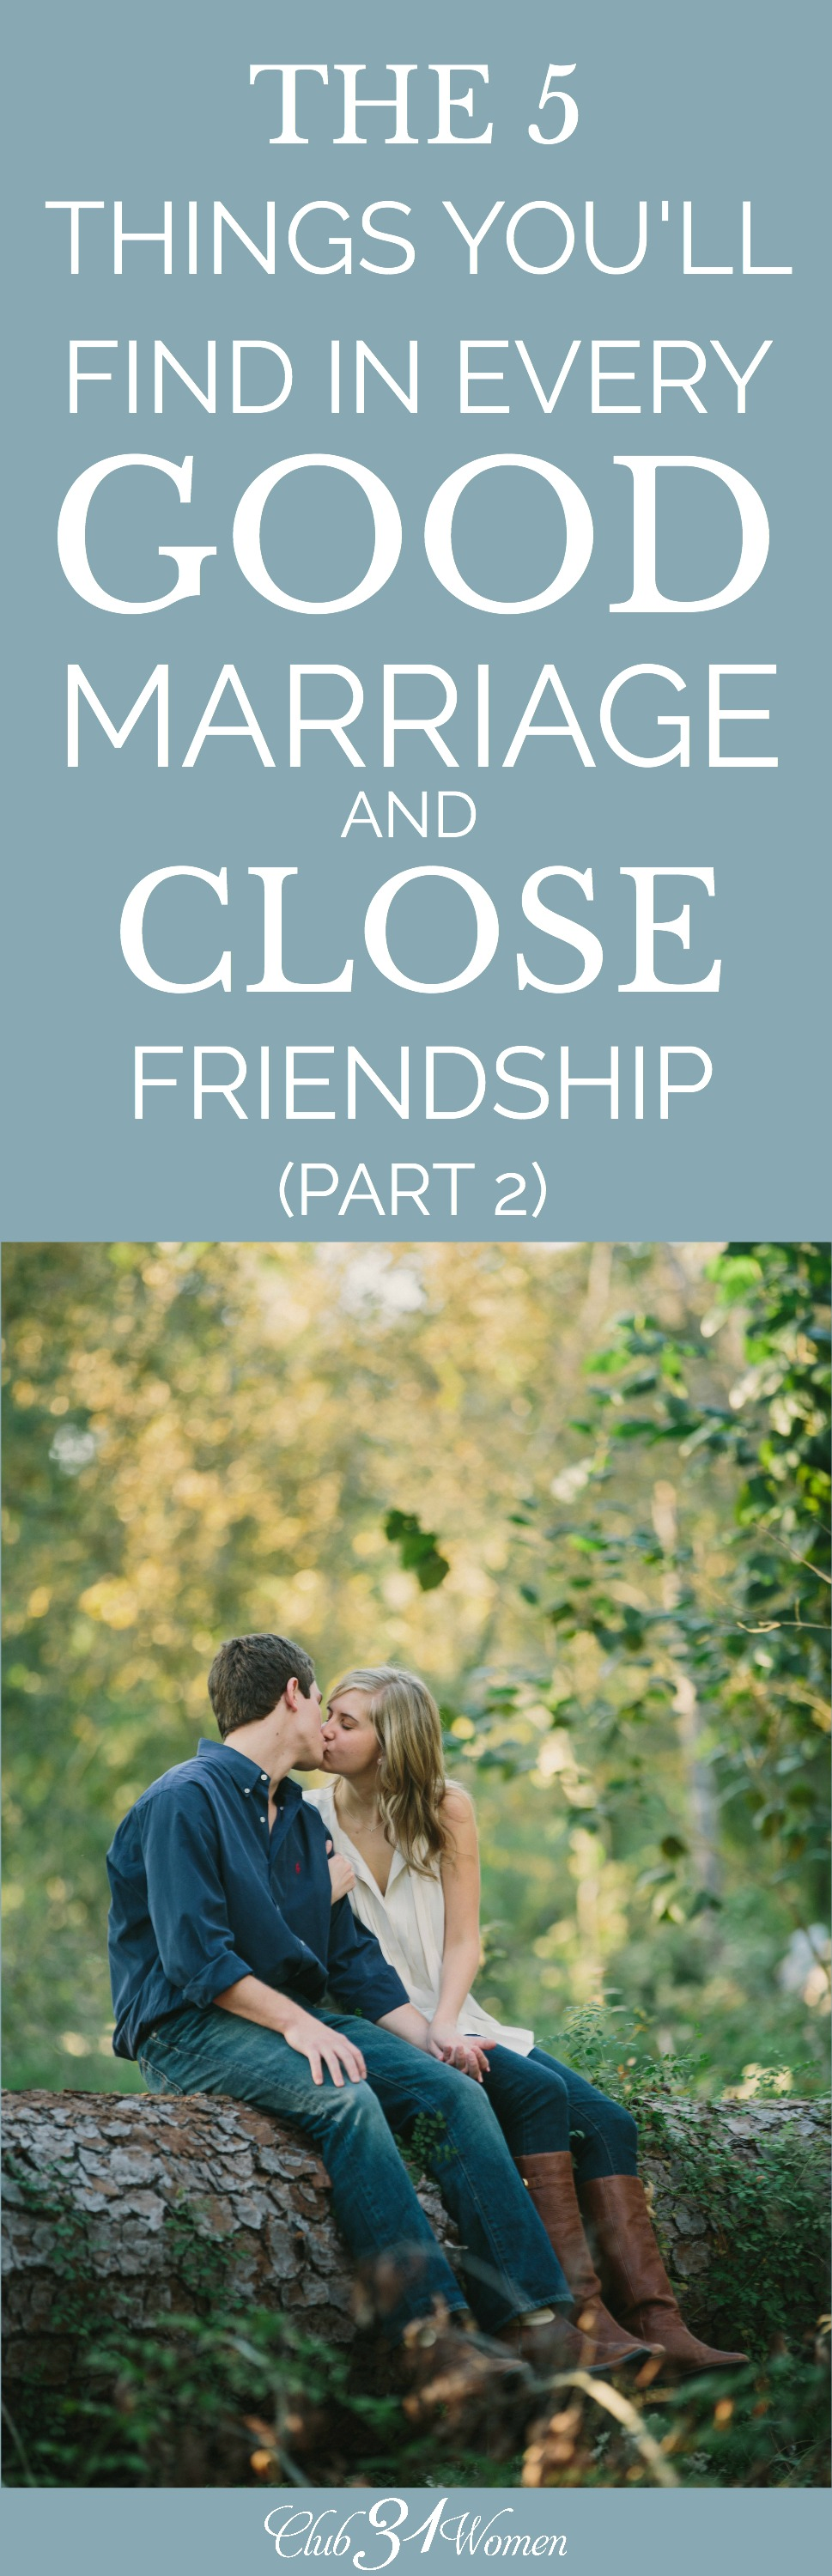 What are the key elements that make up a good marriage? They aren't much different from what makes a close friendship. Here are 5 things you'll find! via @Club31Women